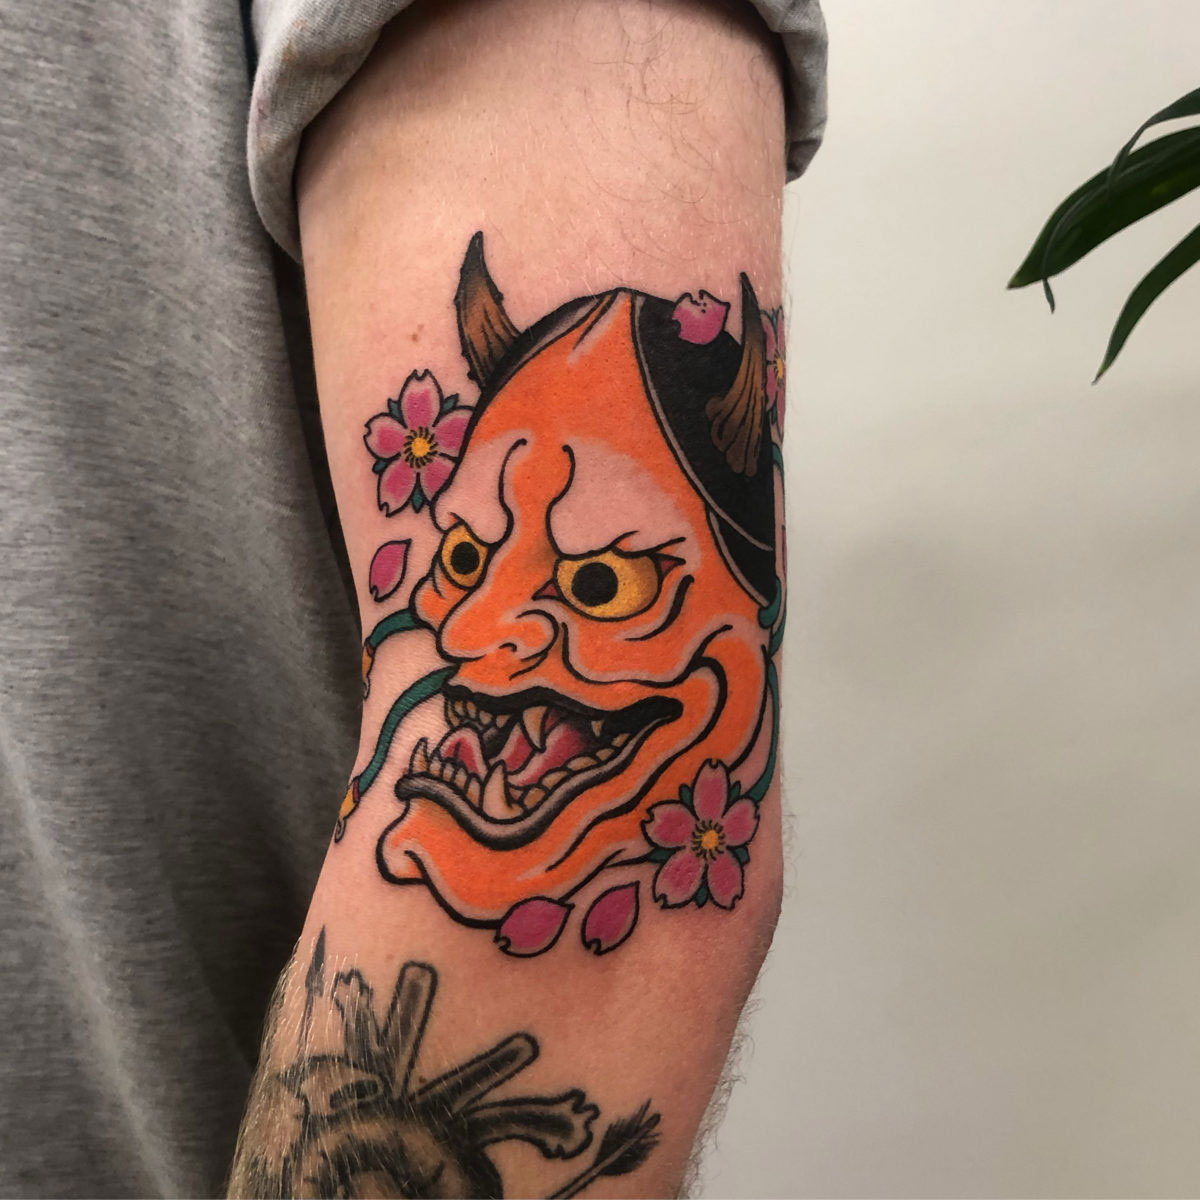 bold bright orange japanese hannya mask with pink cherry blossoms tattooed on upper arm